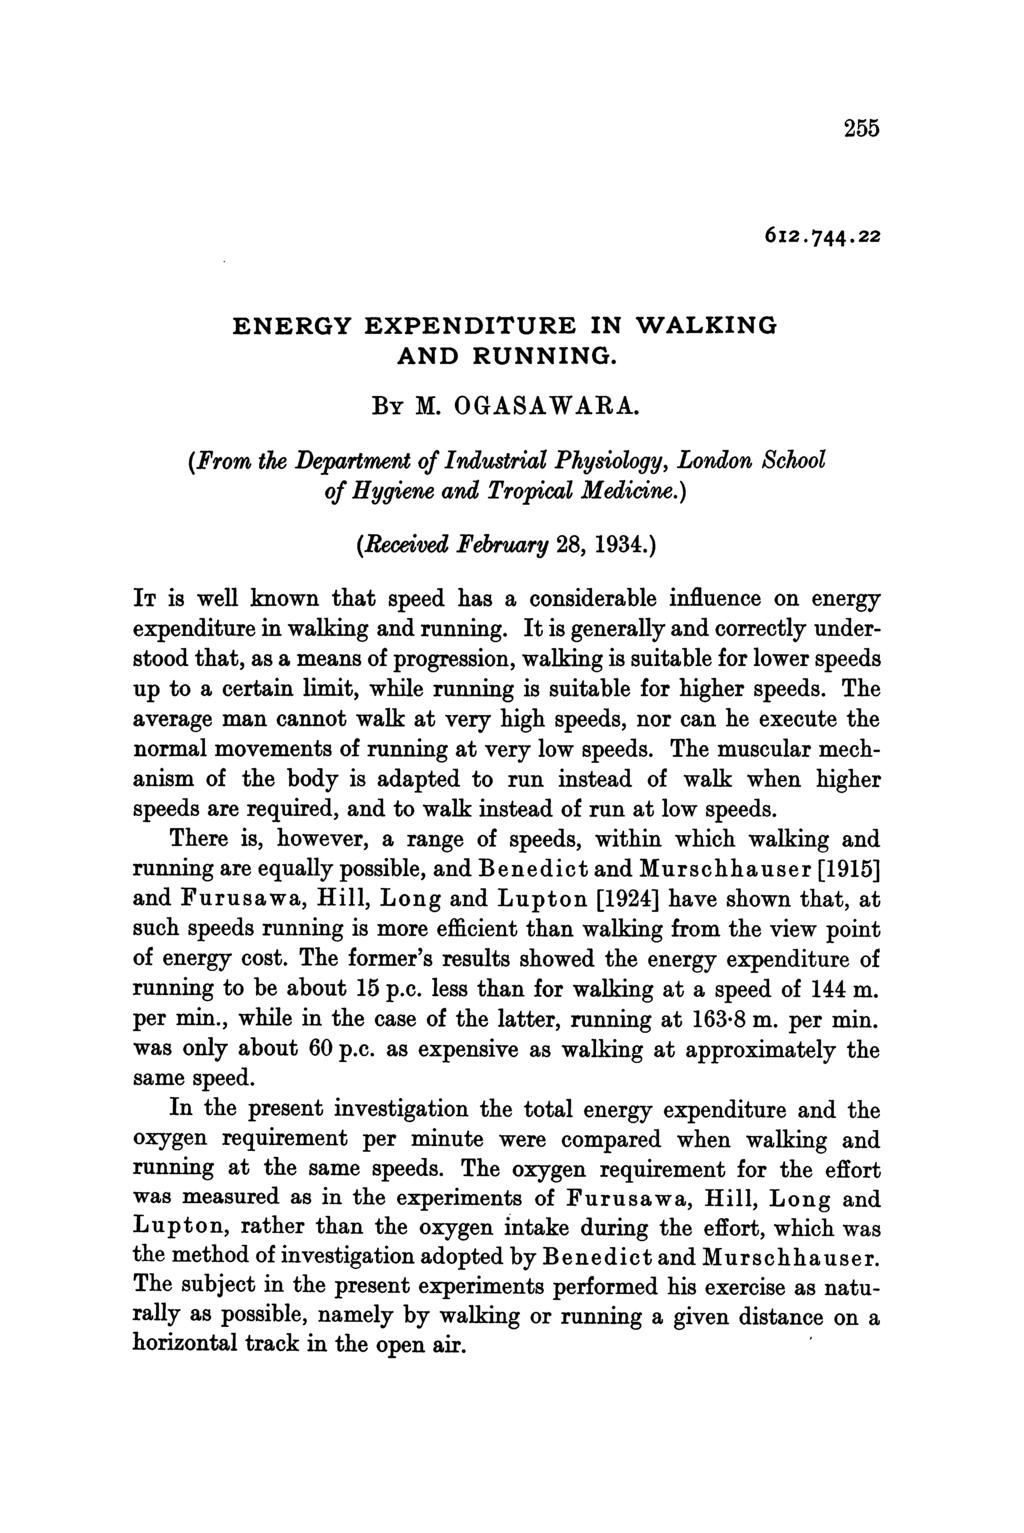 2 6I2 744.22 ENERGY EXPENDITURE IN WALKING AND RUNNING. BY M. OGASAWARA. (From the Department of Industrial Physiology, London School of Hygiene and Tropical Medicine.) (Received February 28, 1934.